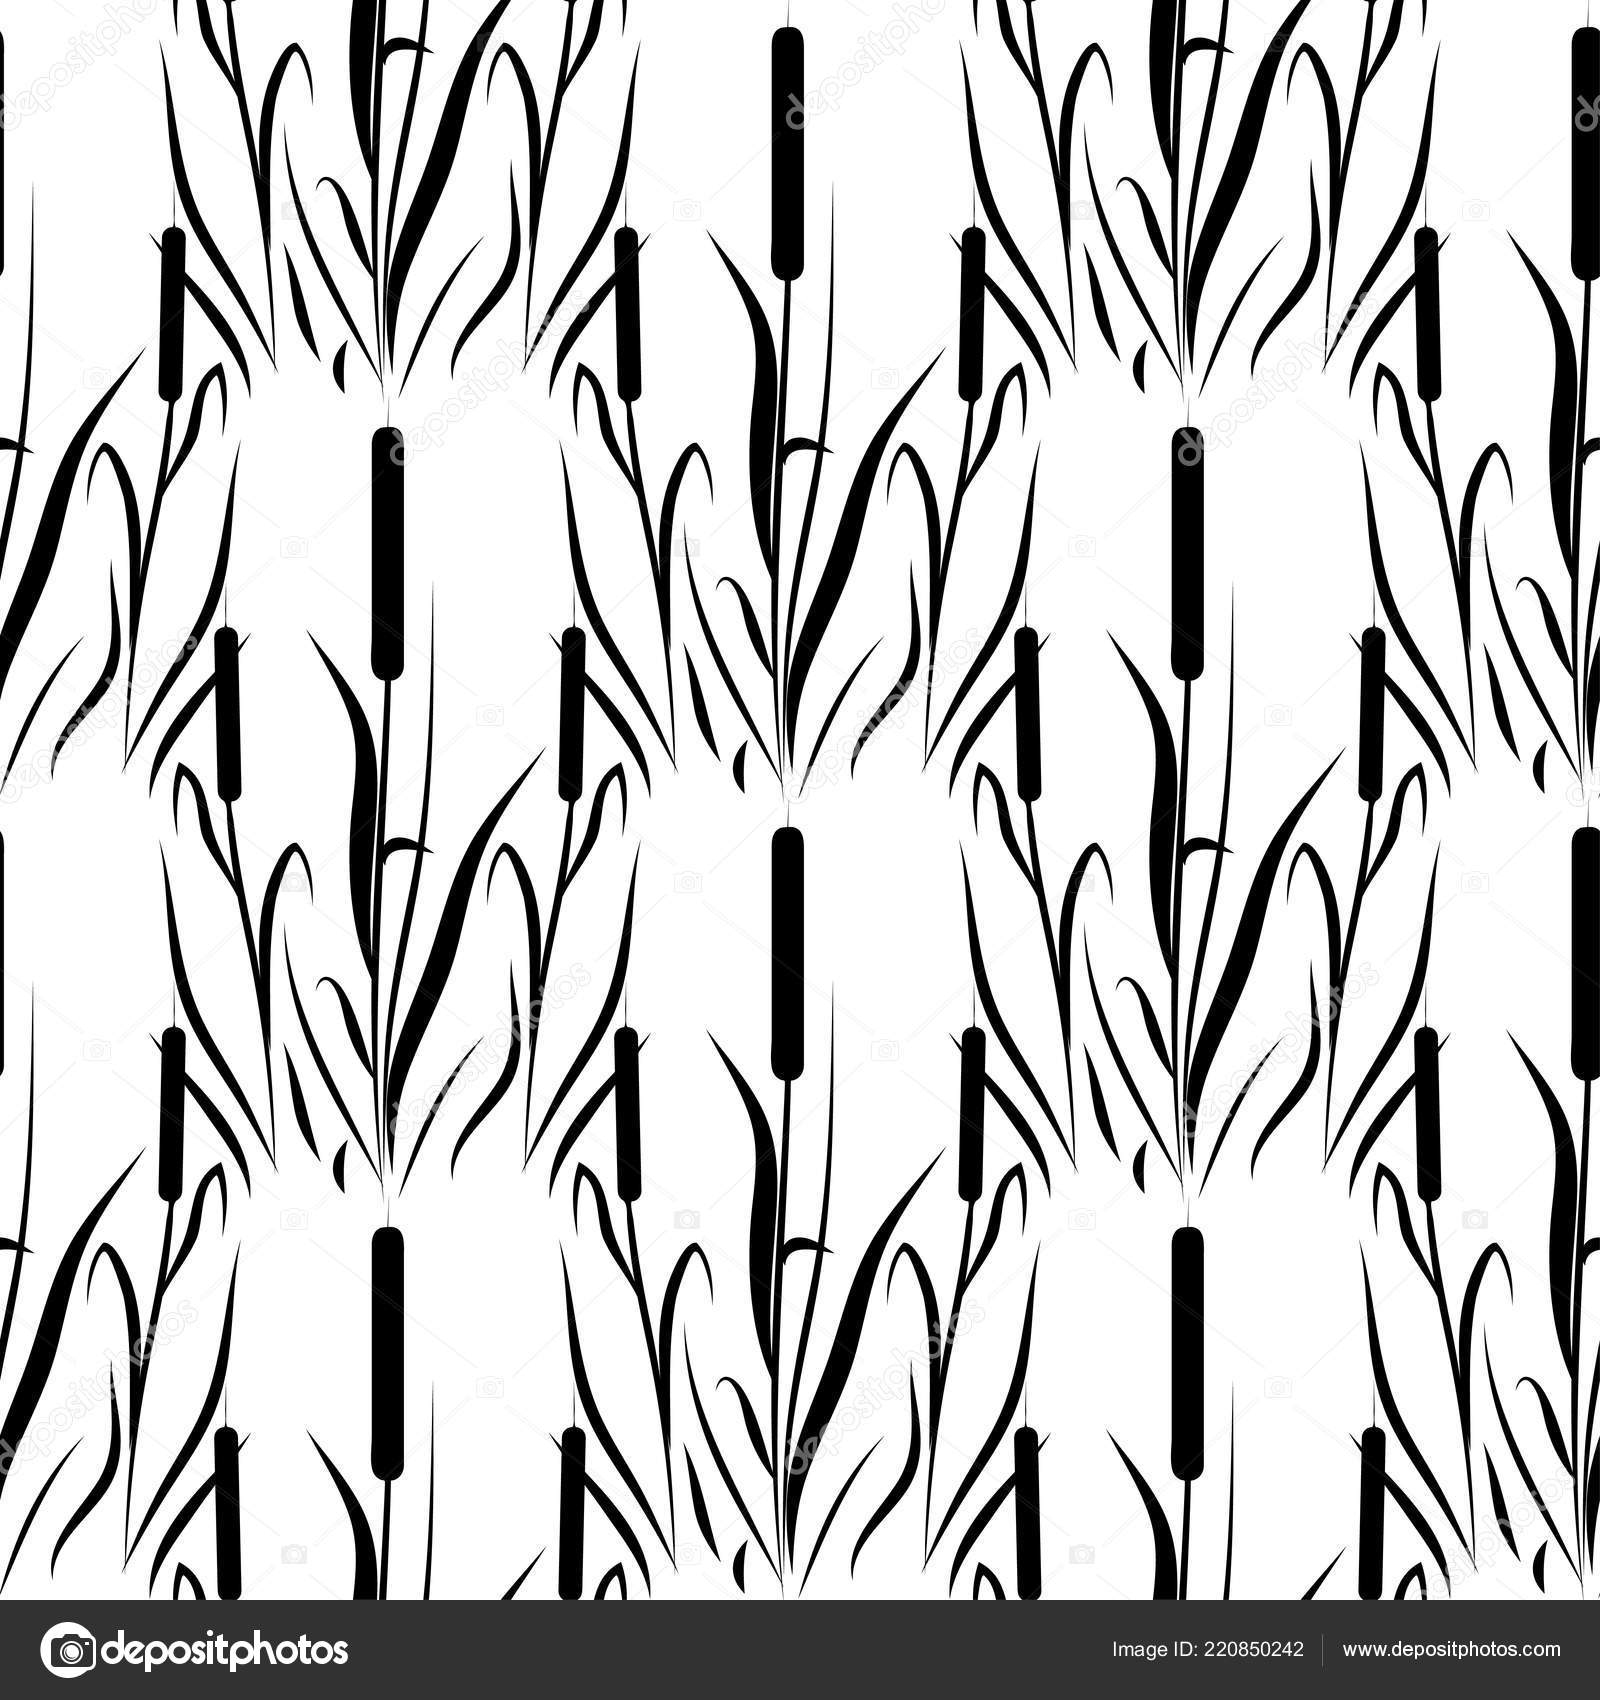 Reed Cattail Background Wallpaper Seamless Silhouette Stock